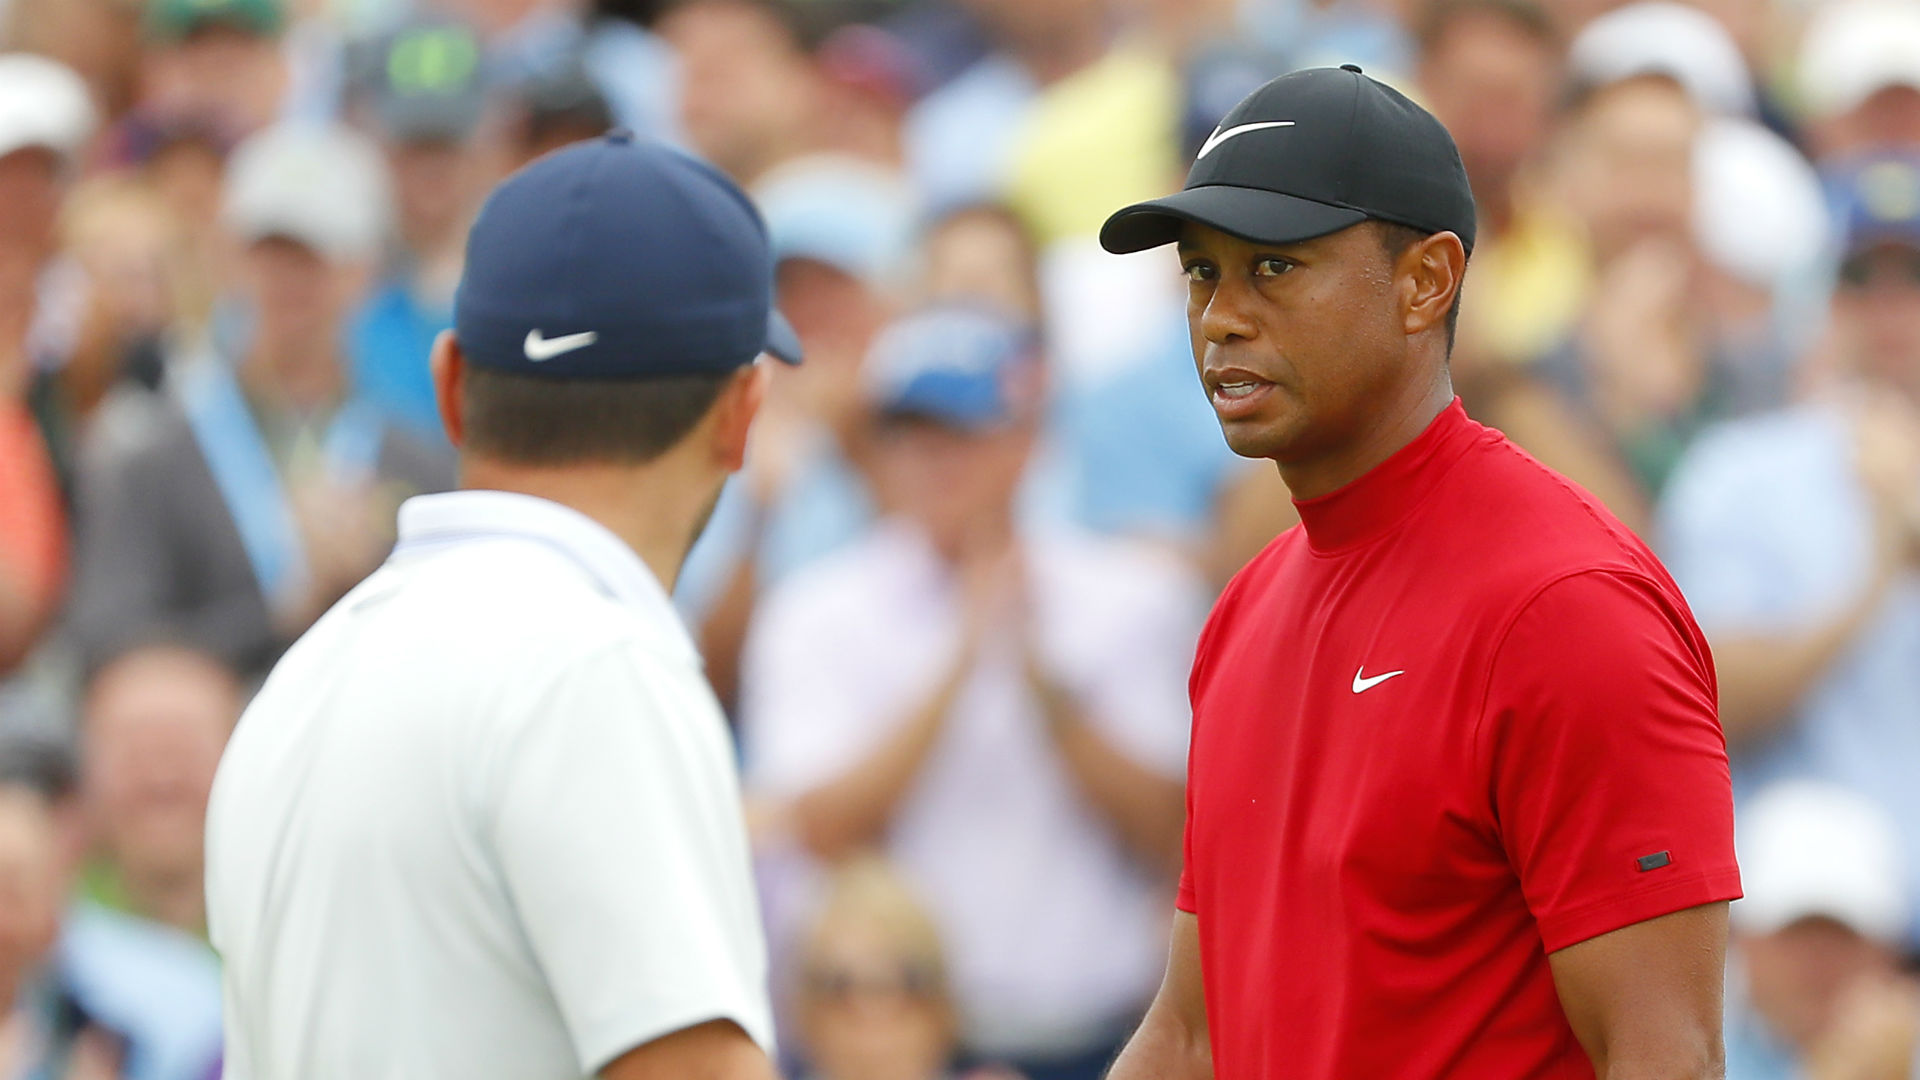 Molinari opens door for Tiger by finding water at 12